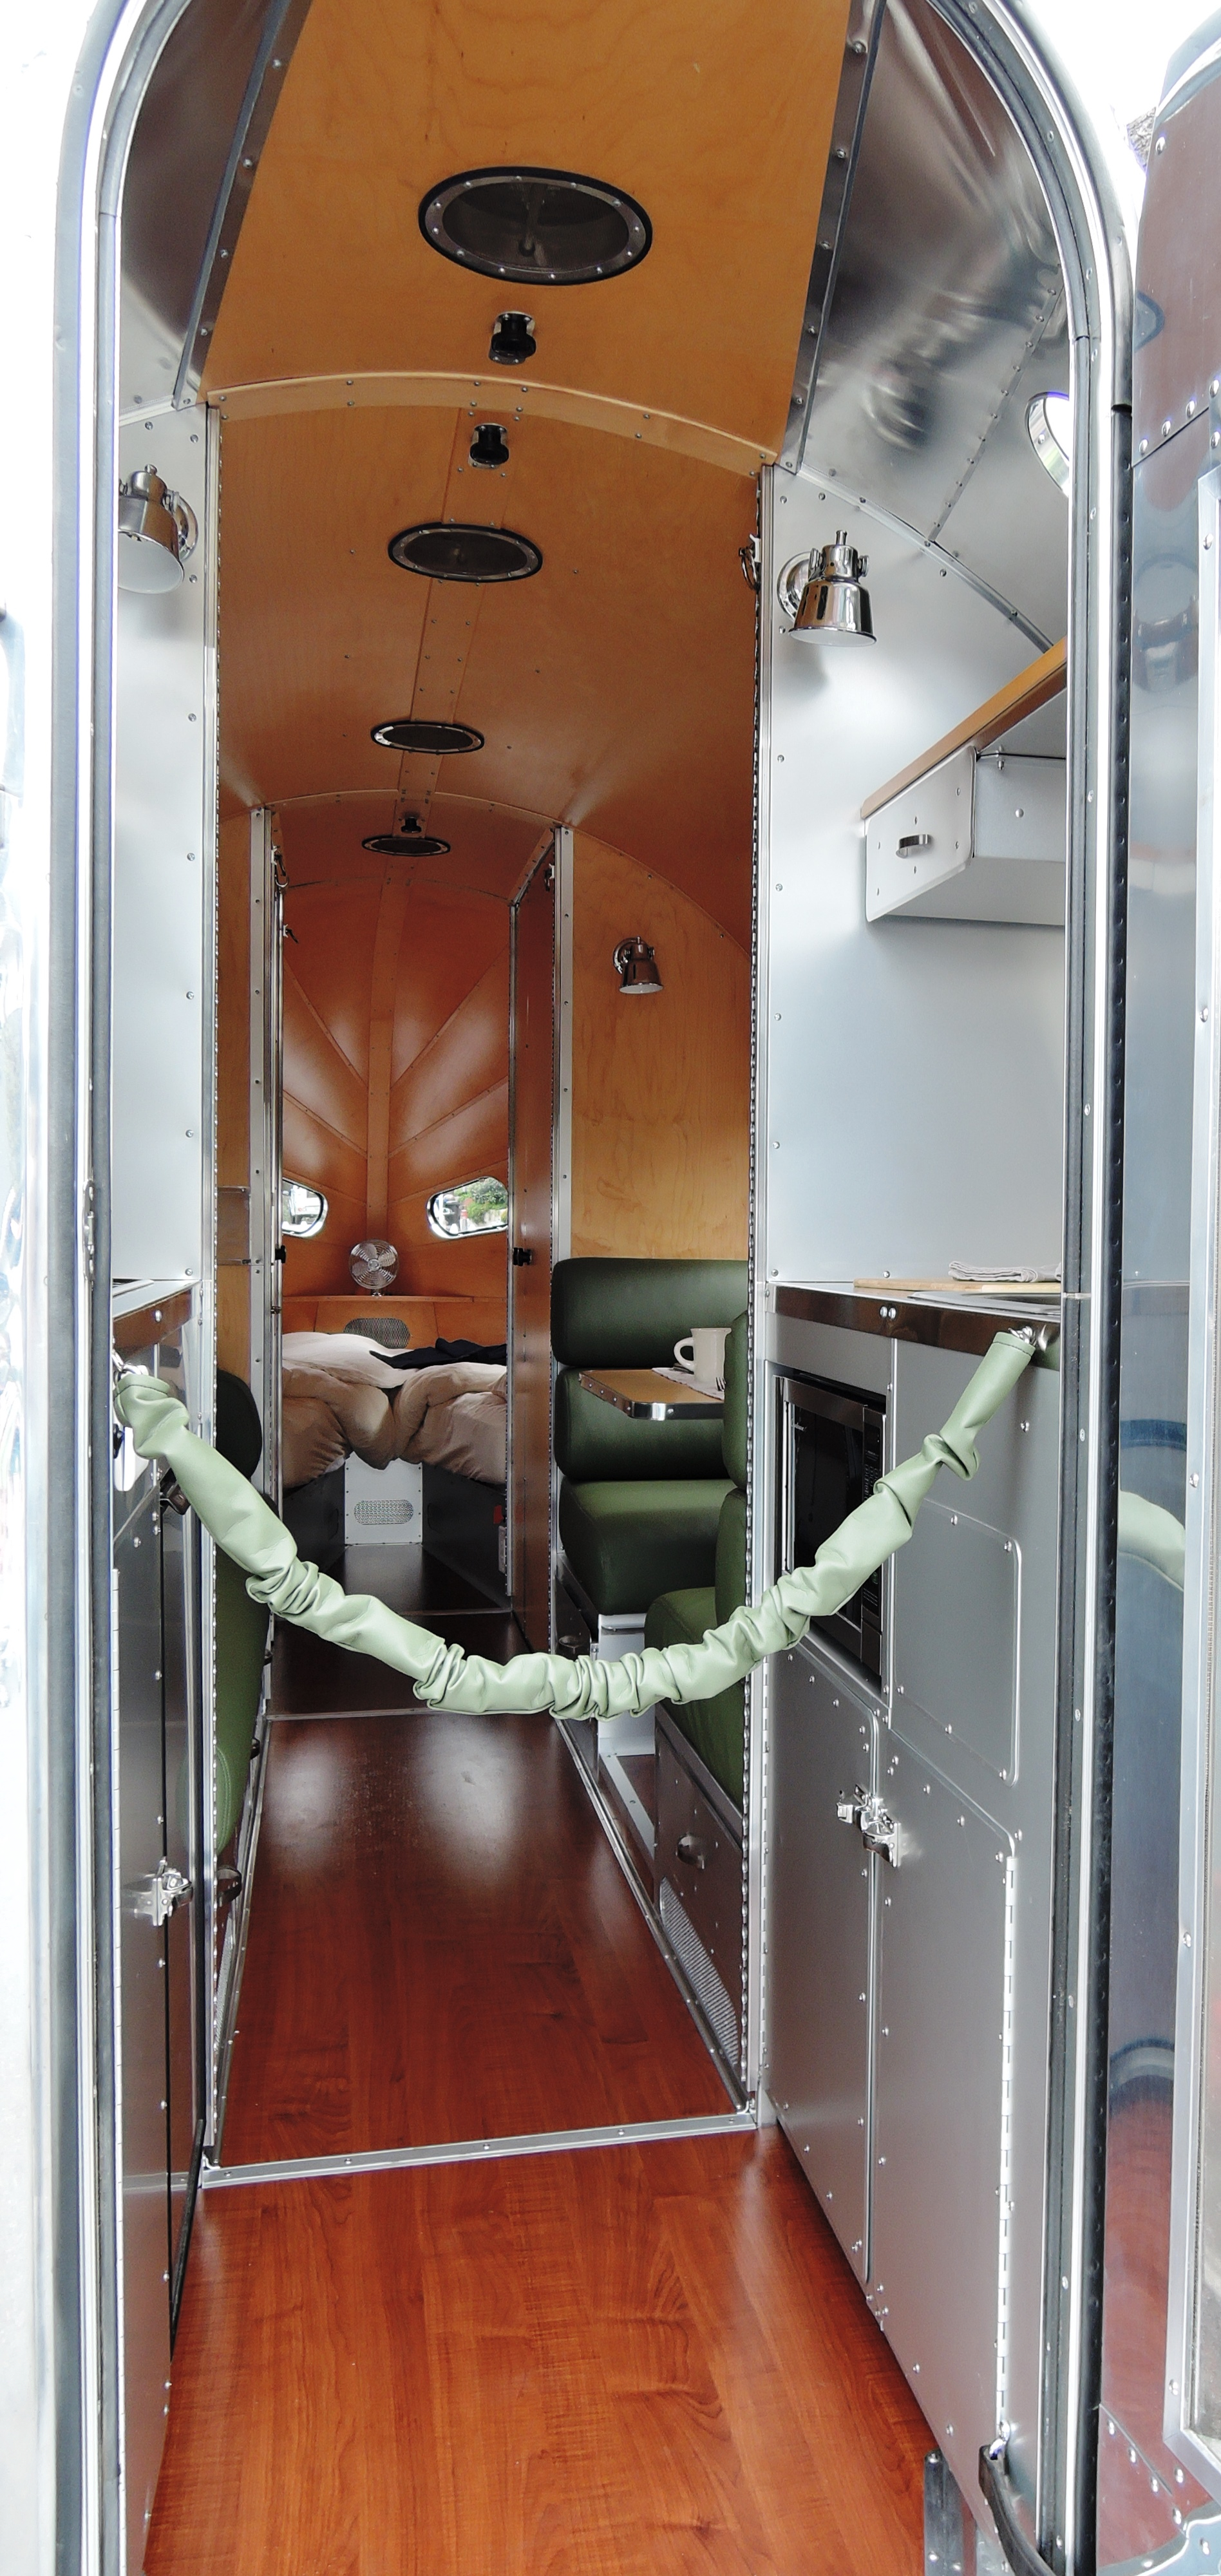 interior bowlus road chief - concours on the ave carmel